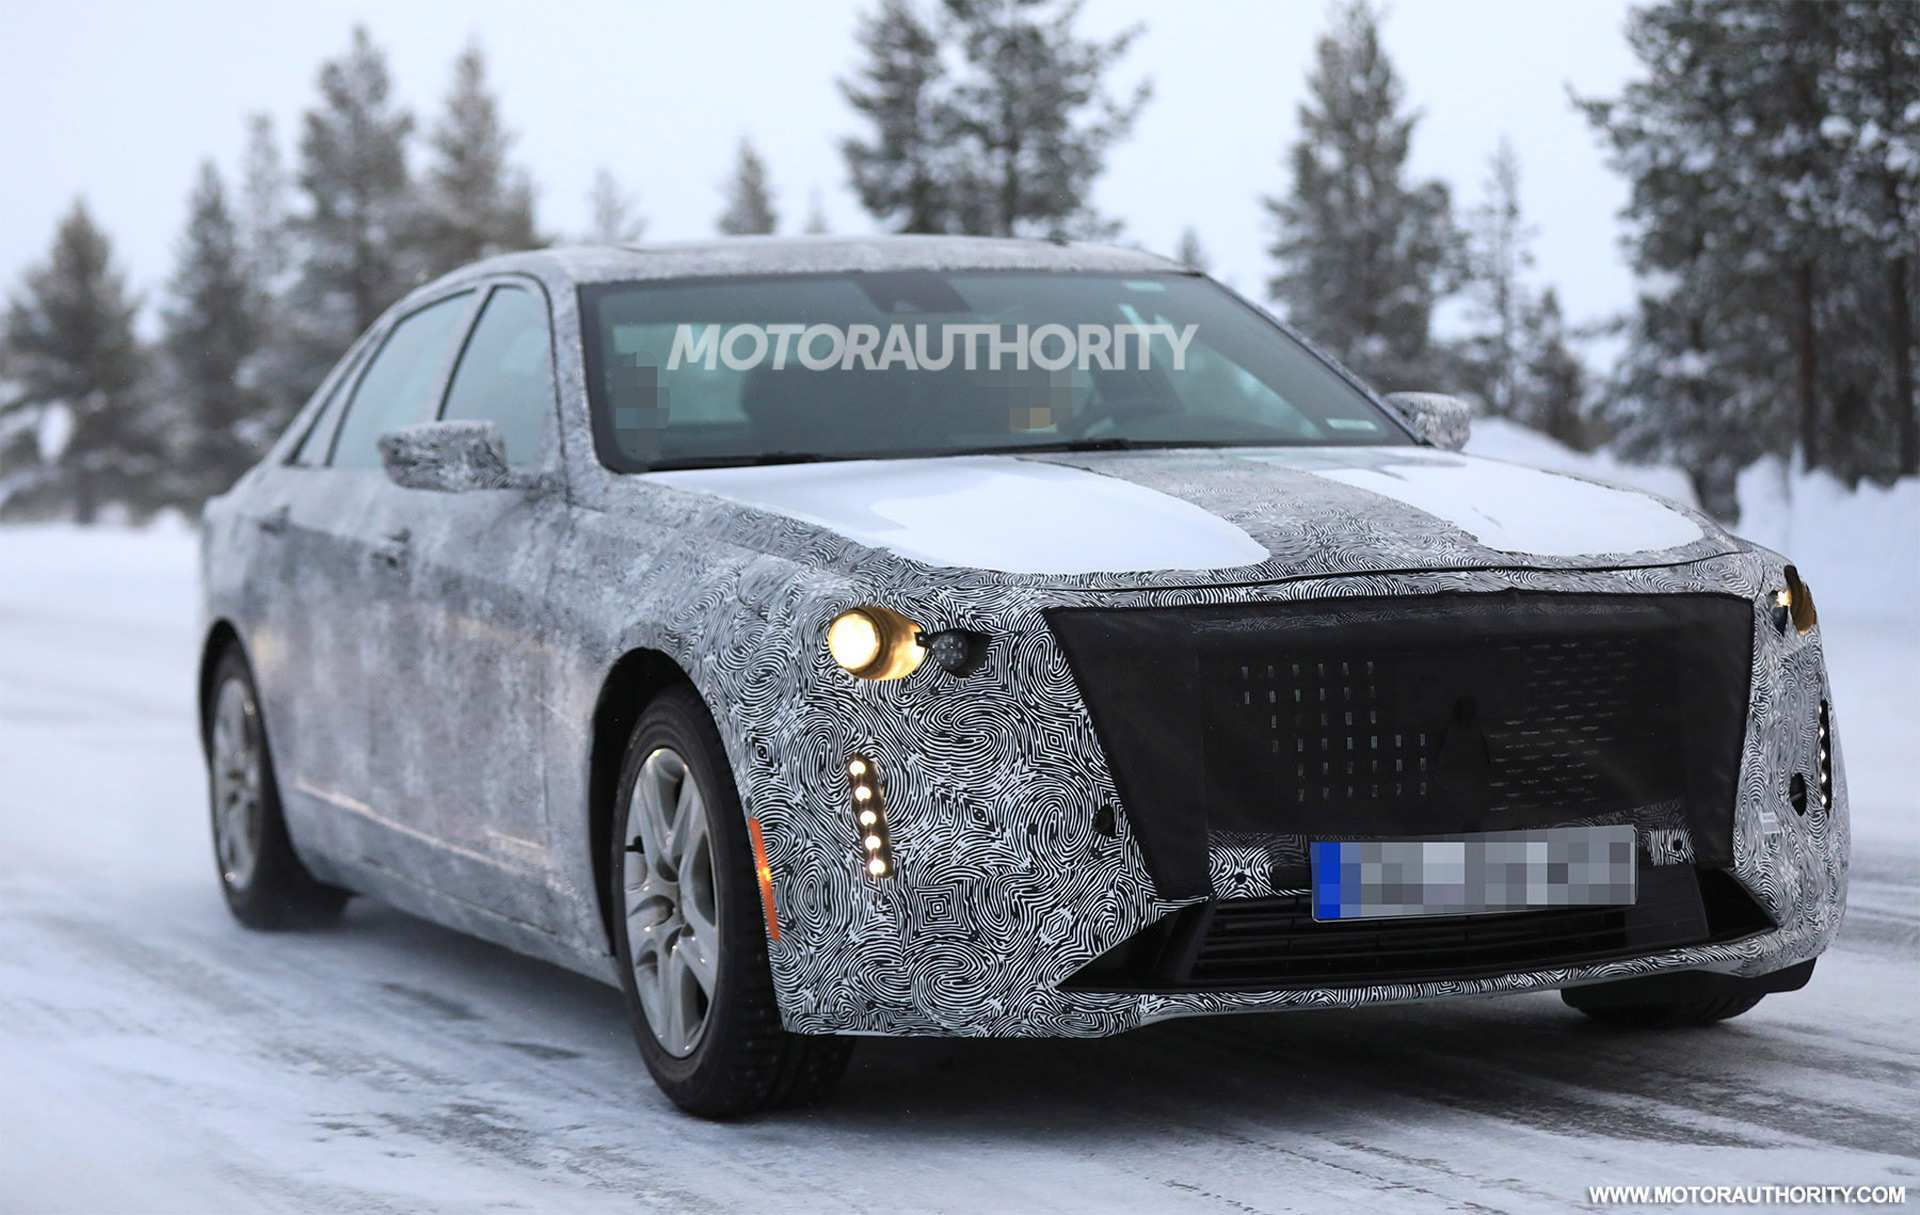 87 Gallery of Cadillac Spy Shots Pricing with Cadillac Spy Shots